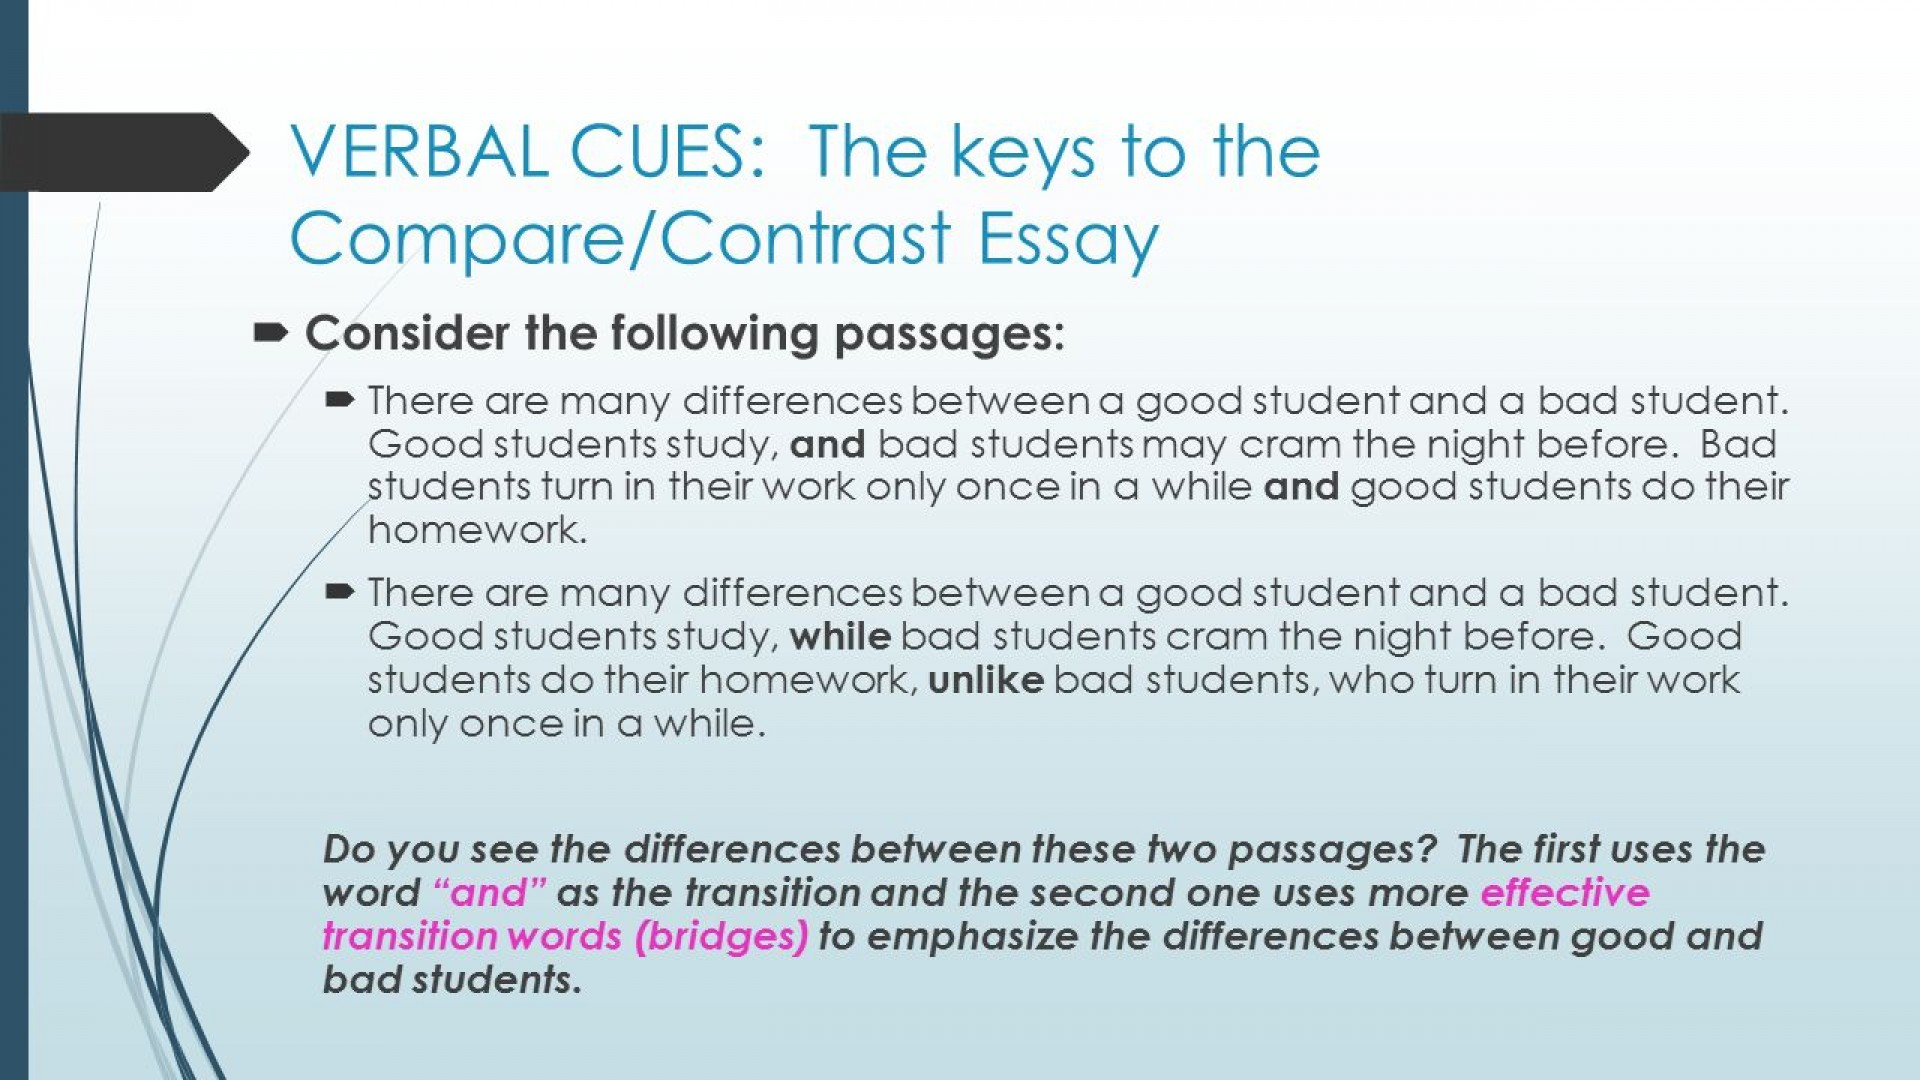 010 Essay About Good Student Example On Best Essays For Students College Homework Help In Sample Punjabi Topics English Urdu Class Kannada Hindi Staggering A Responsibilities Of Write An What Are The Quality Characteristics 1920